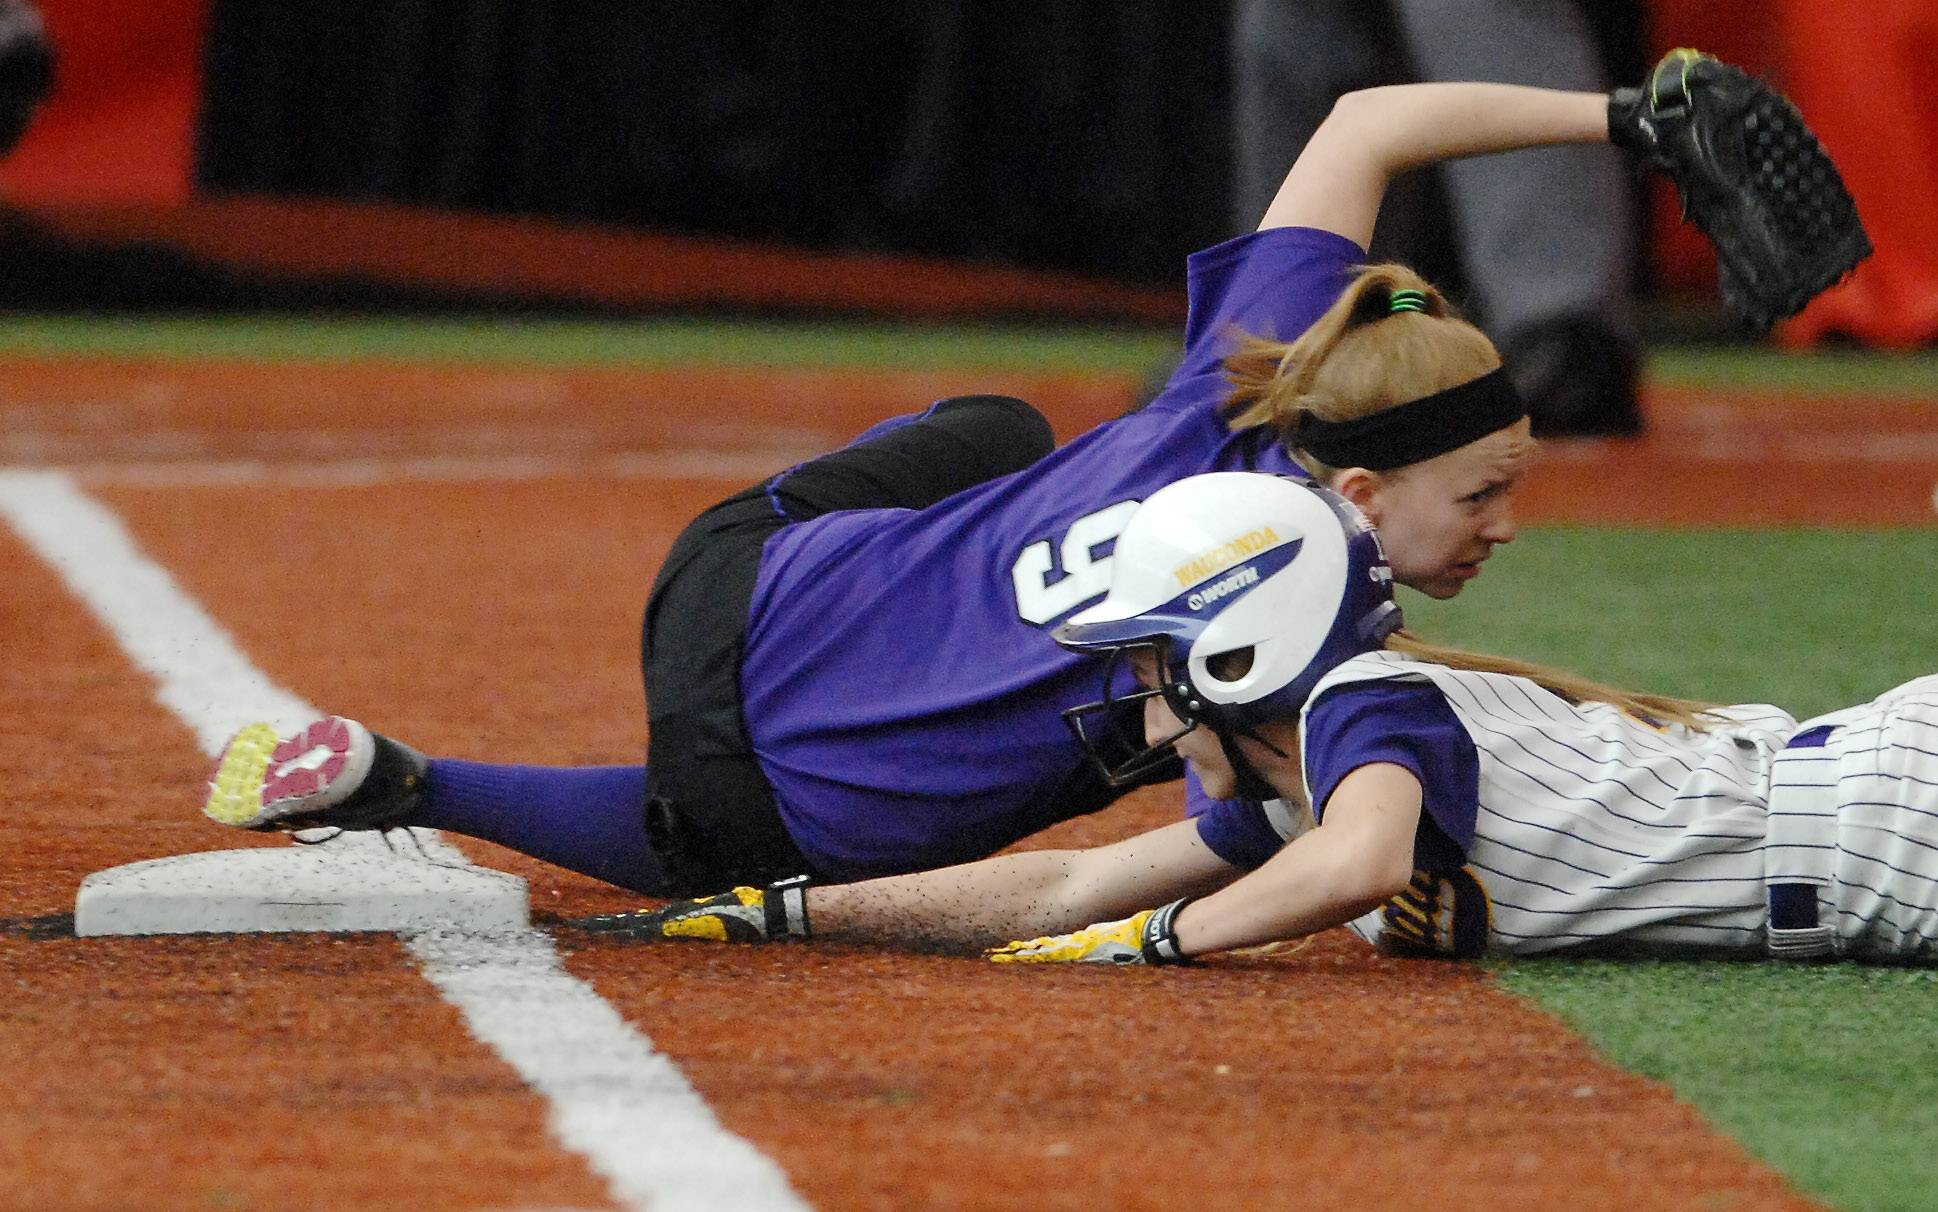 Wauconda's Kayla Wedl dives safely back into third after over-sliding the bag while Hampshire's Erin Doyle tries to reach back and make the tag during softball action Monday at The Dome in Rosemont.